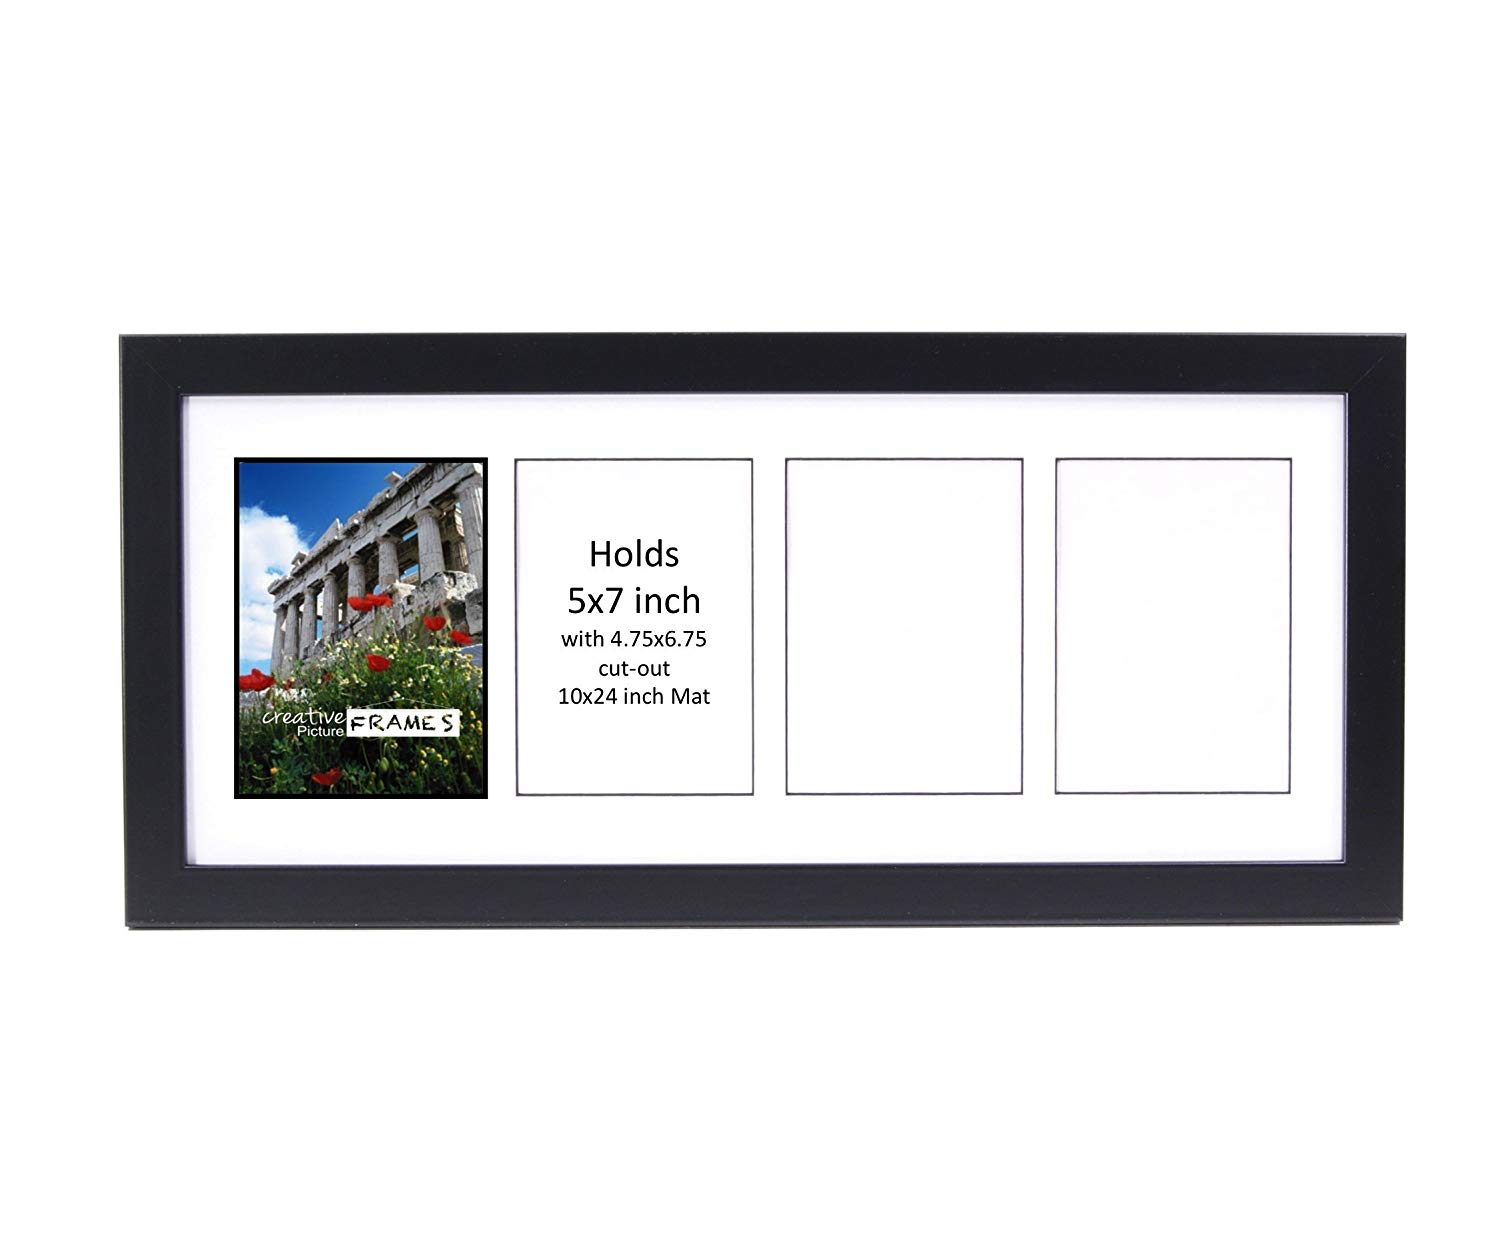 Creative Picture Frames CreativePF- 4 Opening Glass Face Black Picture Frame to hold 5 by 7 inch Photographs including 10x24-inch White Mat Collage